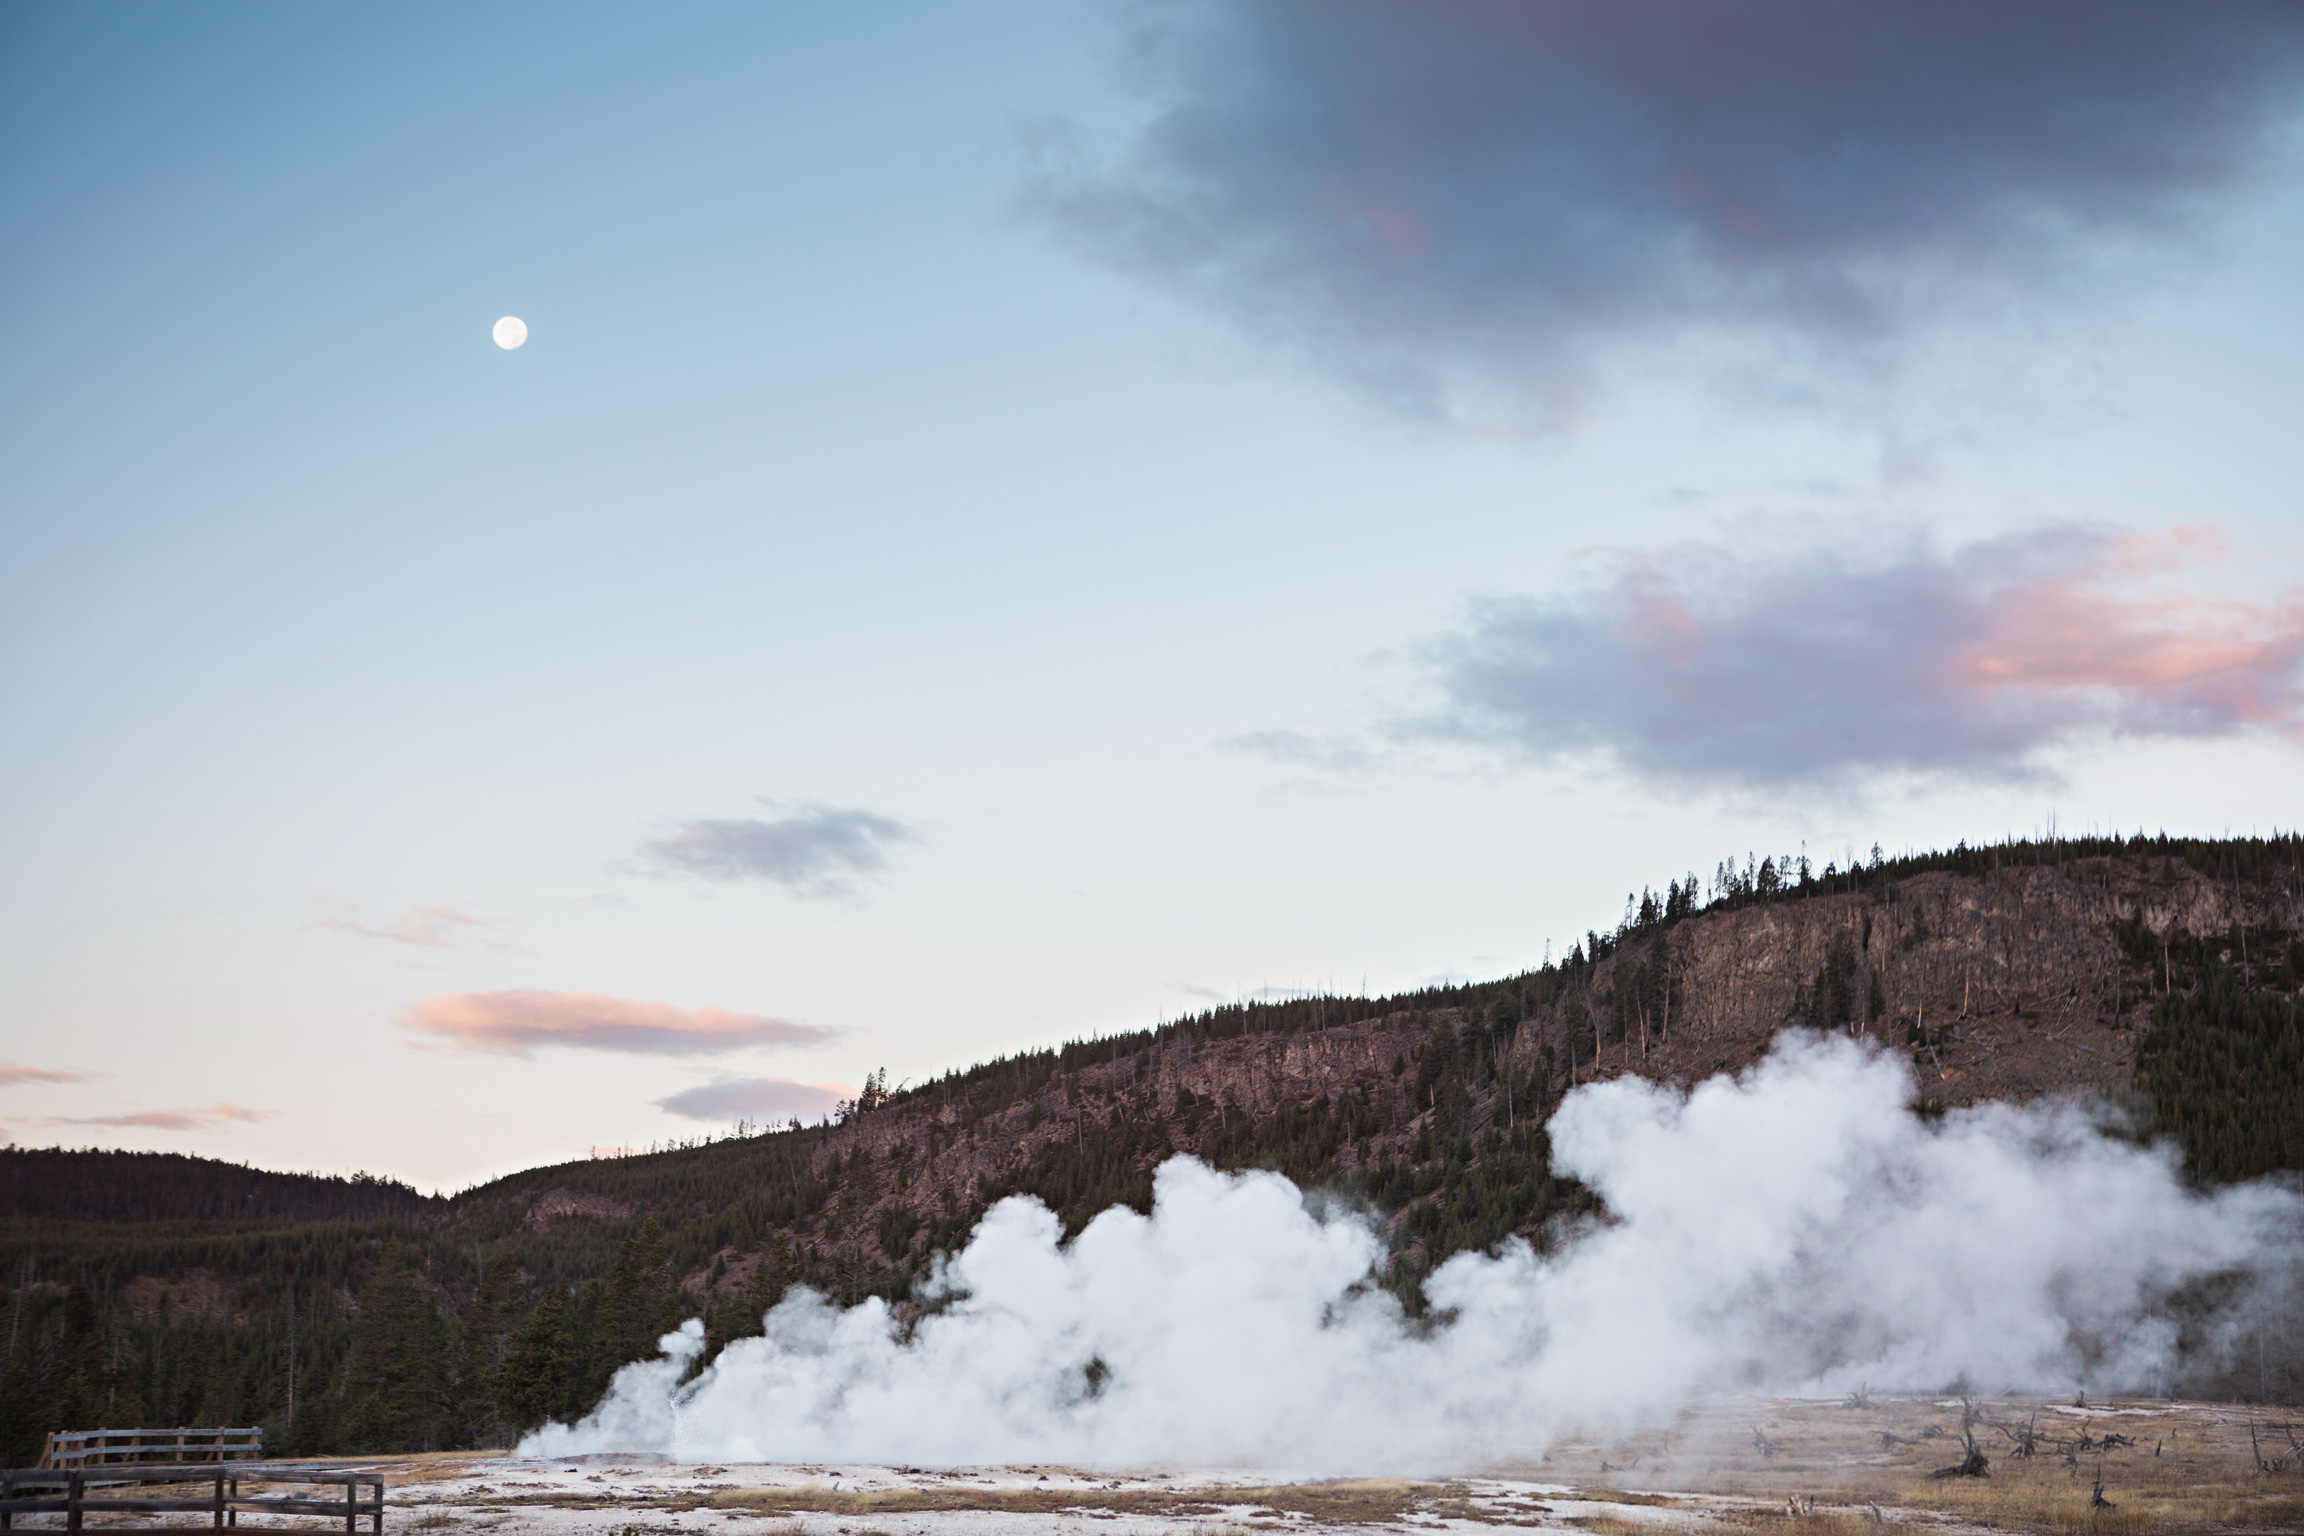 CindyGiovagnoli_road_trip_Yellowstone_National_Park_Montana_Wyoming_hot_springs_geyser_Old_Faithful_Grand_Prismatic-017.jpg